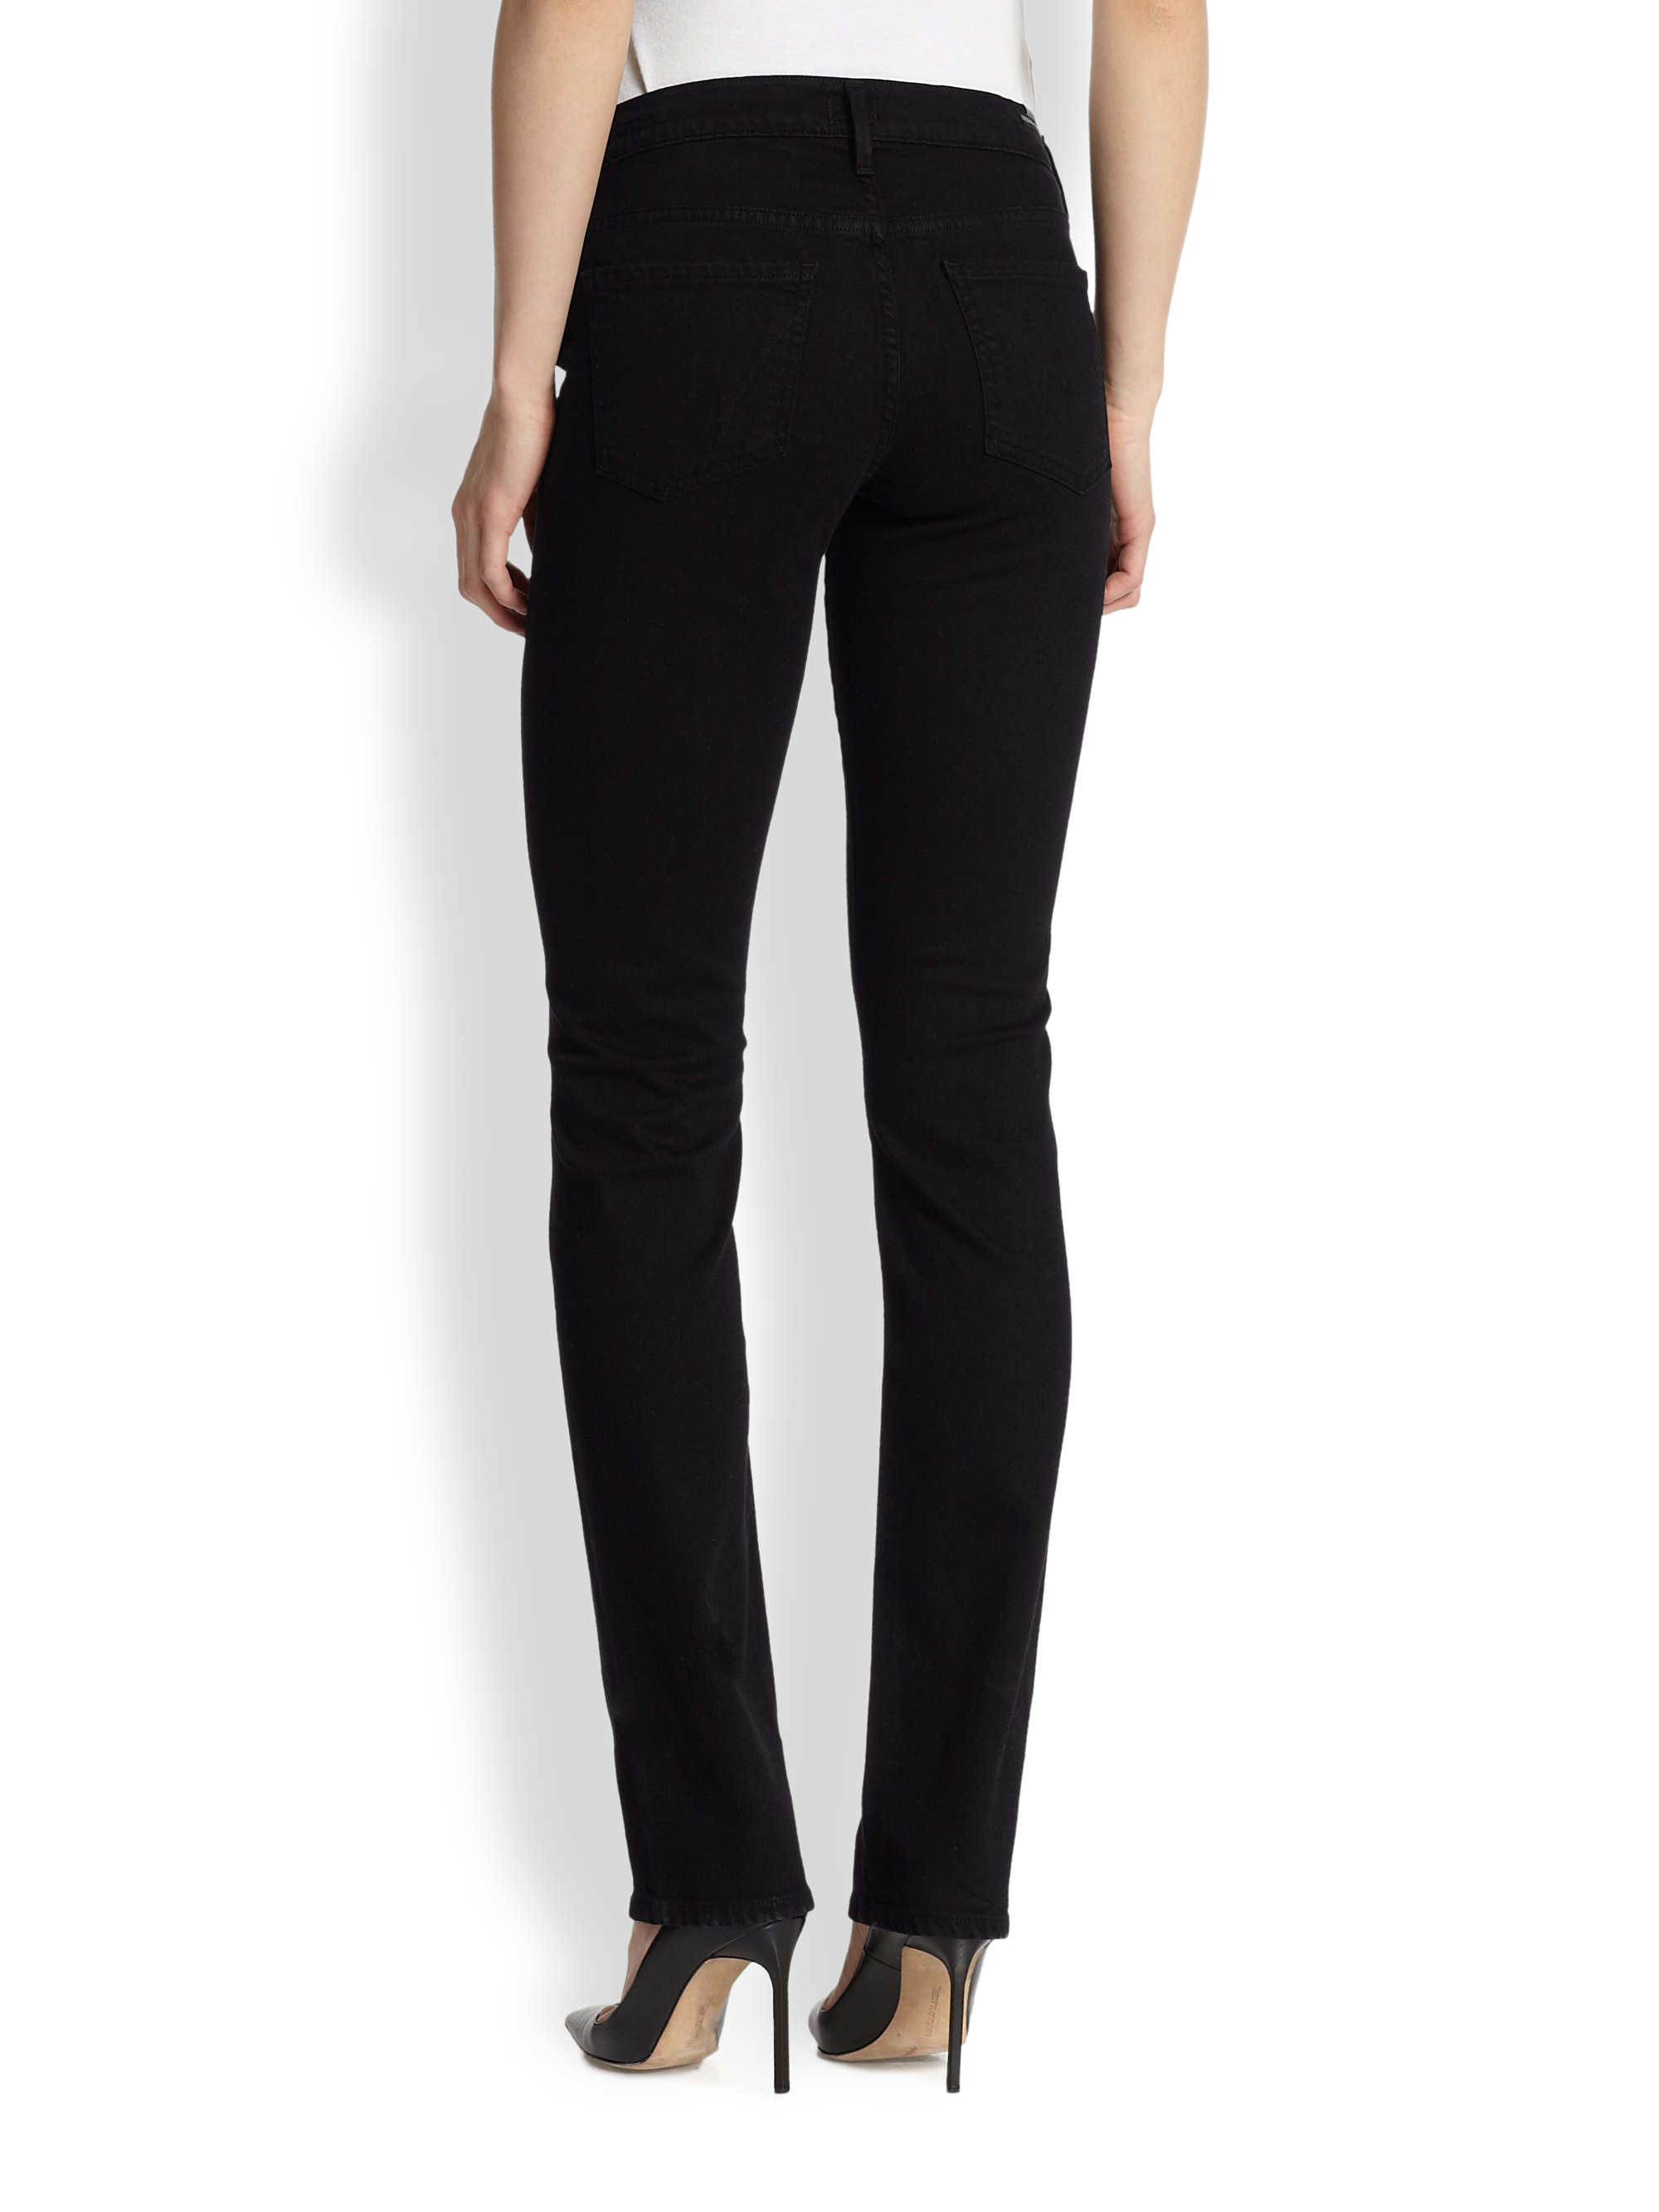 Citizens of humanity Ava Straight-Leg Maternity Jeans in Black | Lyst